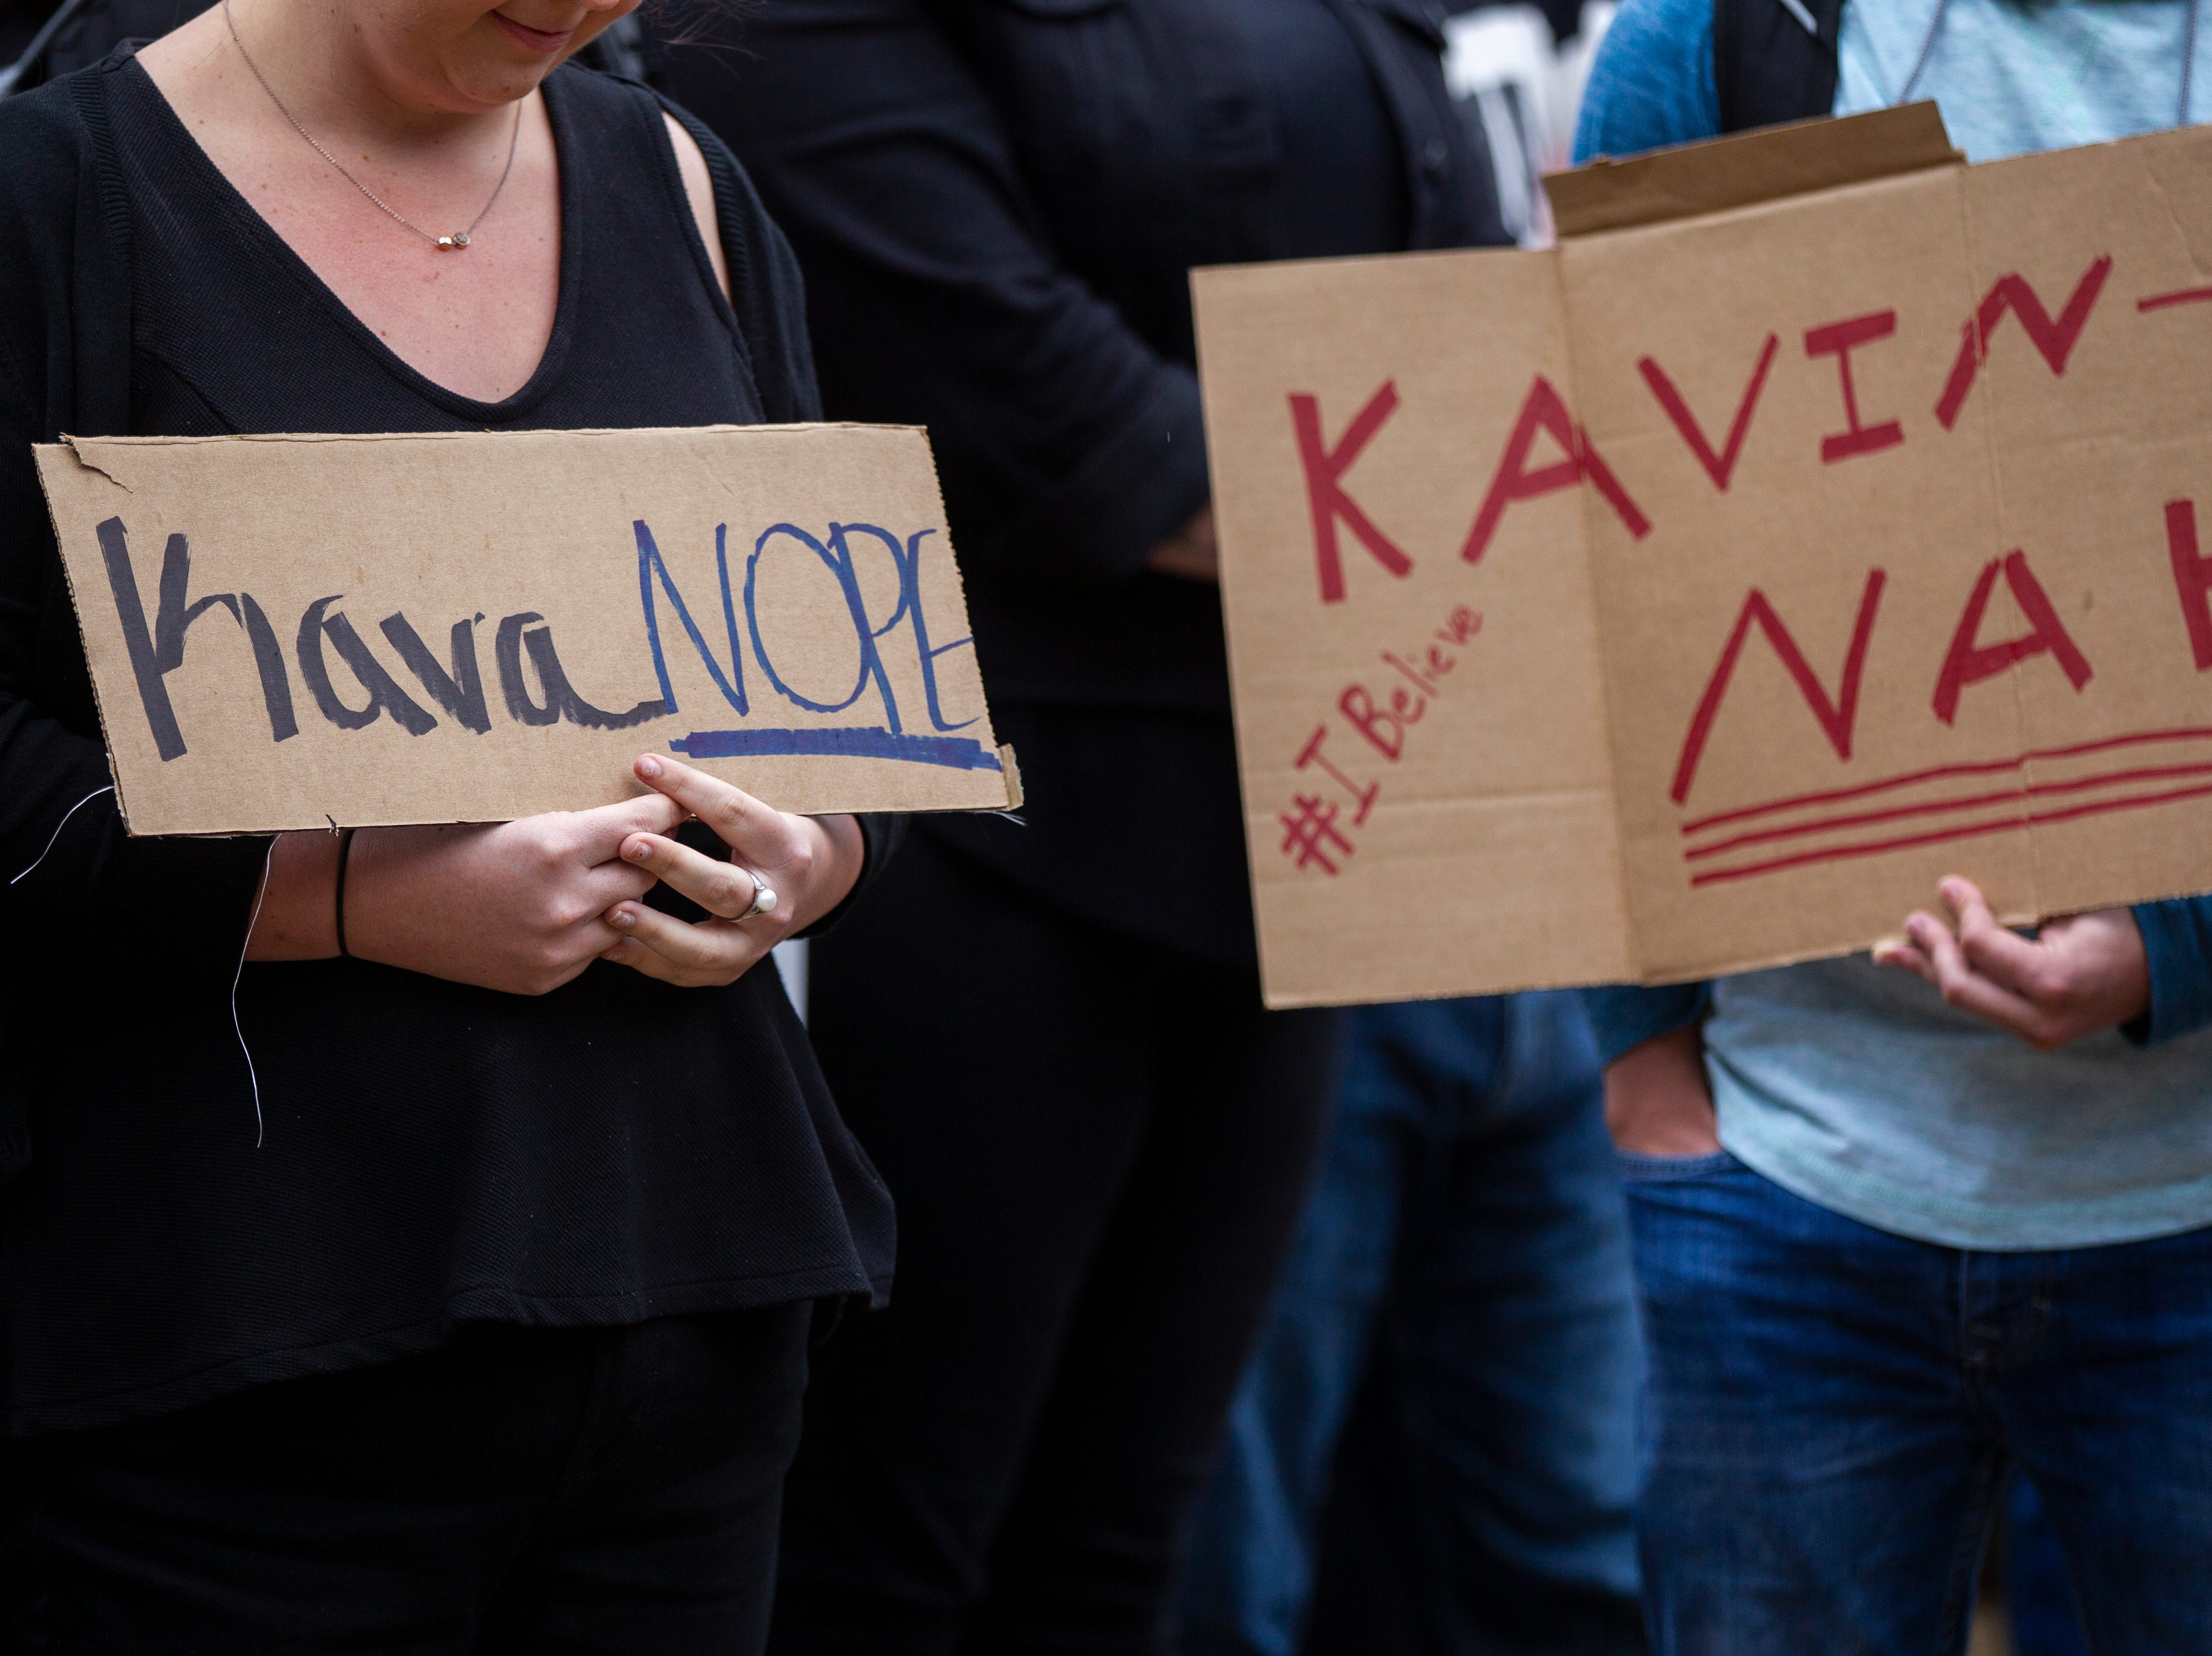 Students hold signs during protest against Supreme Court nominee Brett Kavanaugh on Friday, Sept. 28, 2018, outside the Boyd Law Building on the University of Iowa campus in Iowa City.